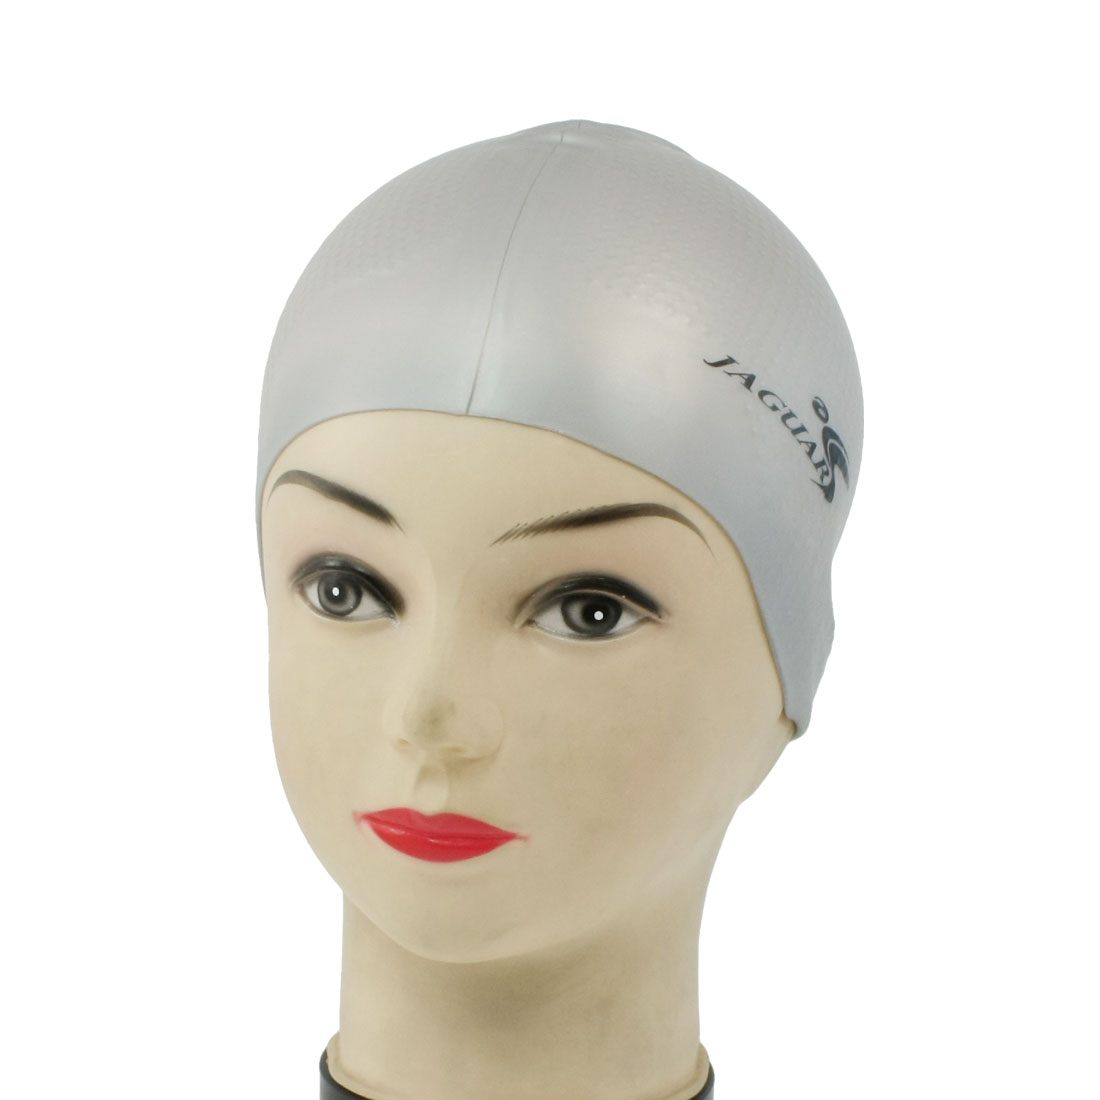 Stretchable Swimming Diving Sports Cap Light Gray for Adults